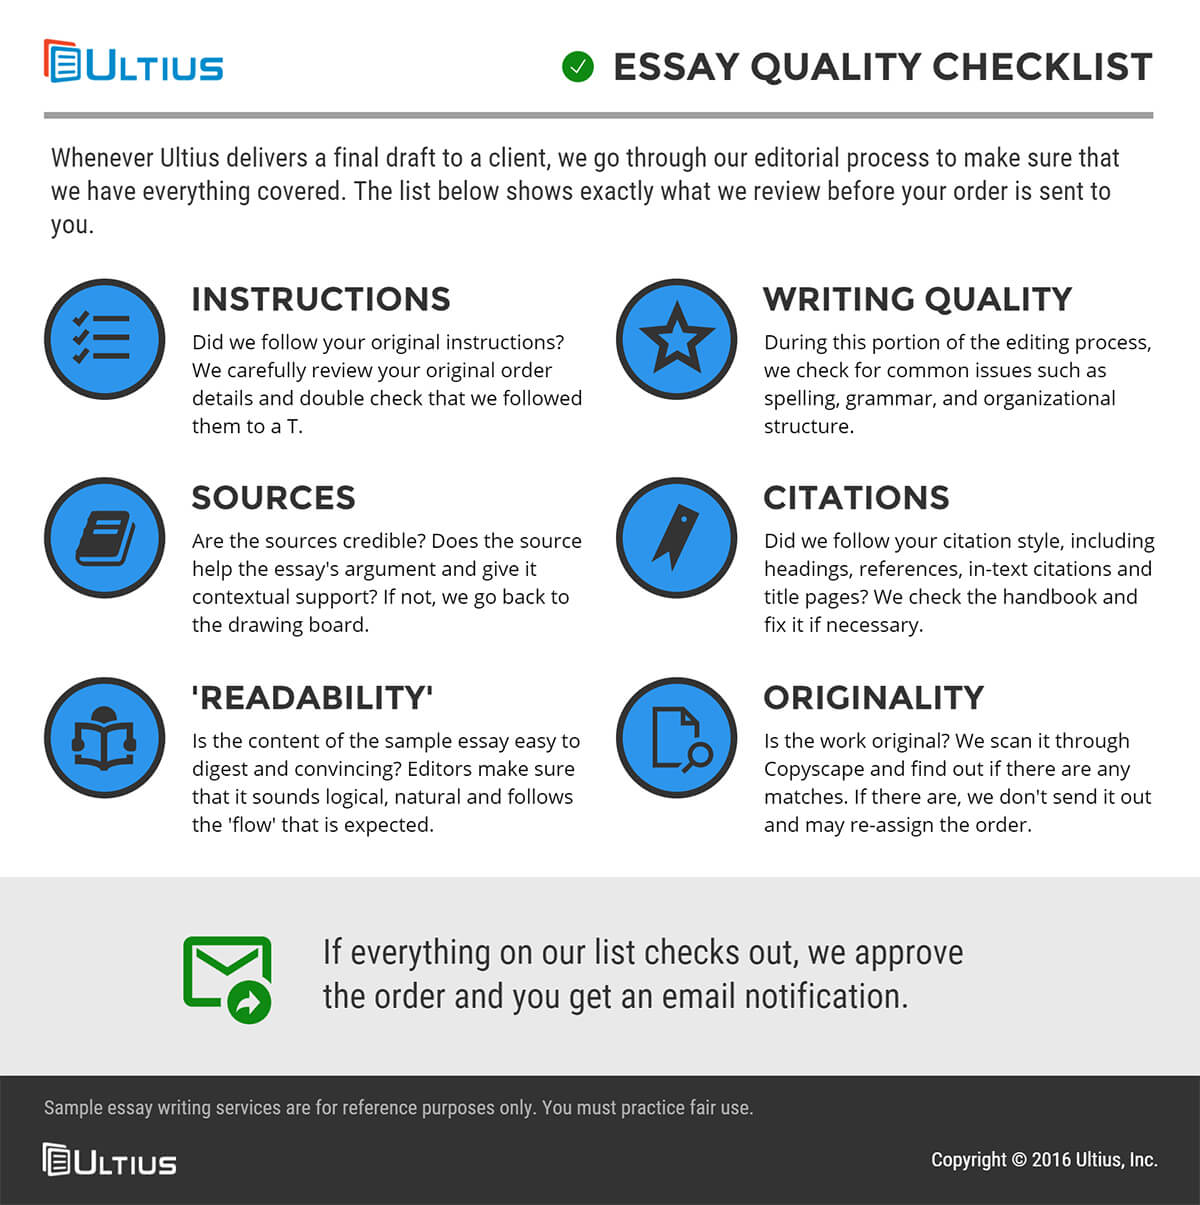 buy essay papers buy research report writing help writing buy essay online original american writers ultiuspurchased essay quality checklist